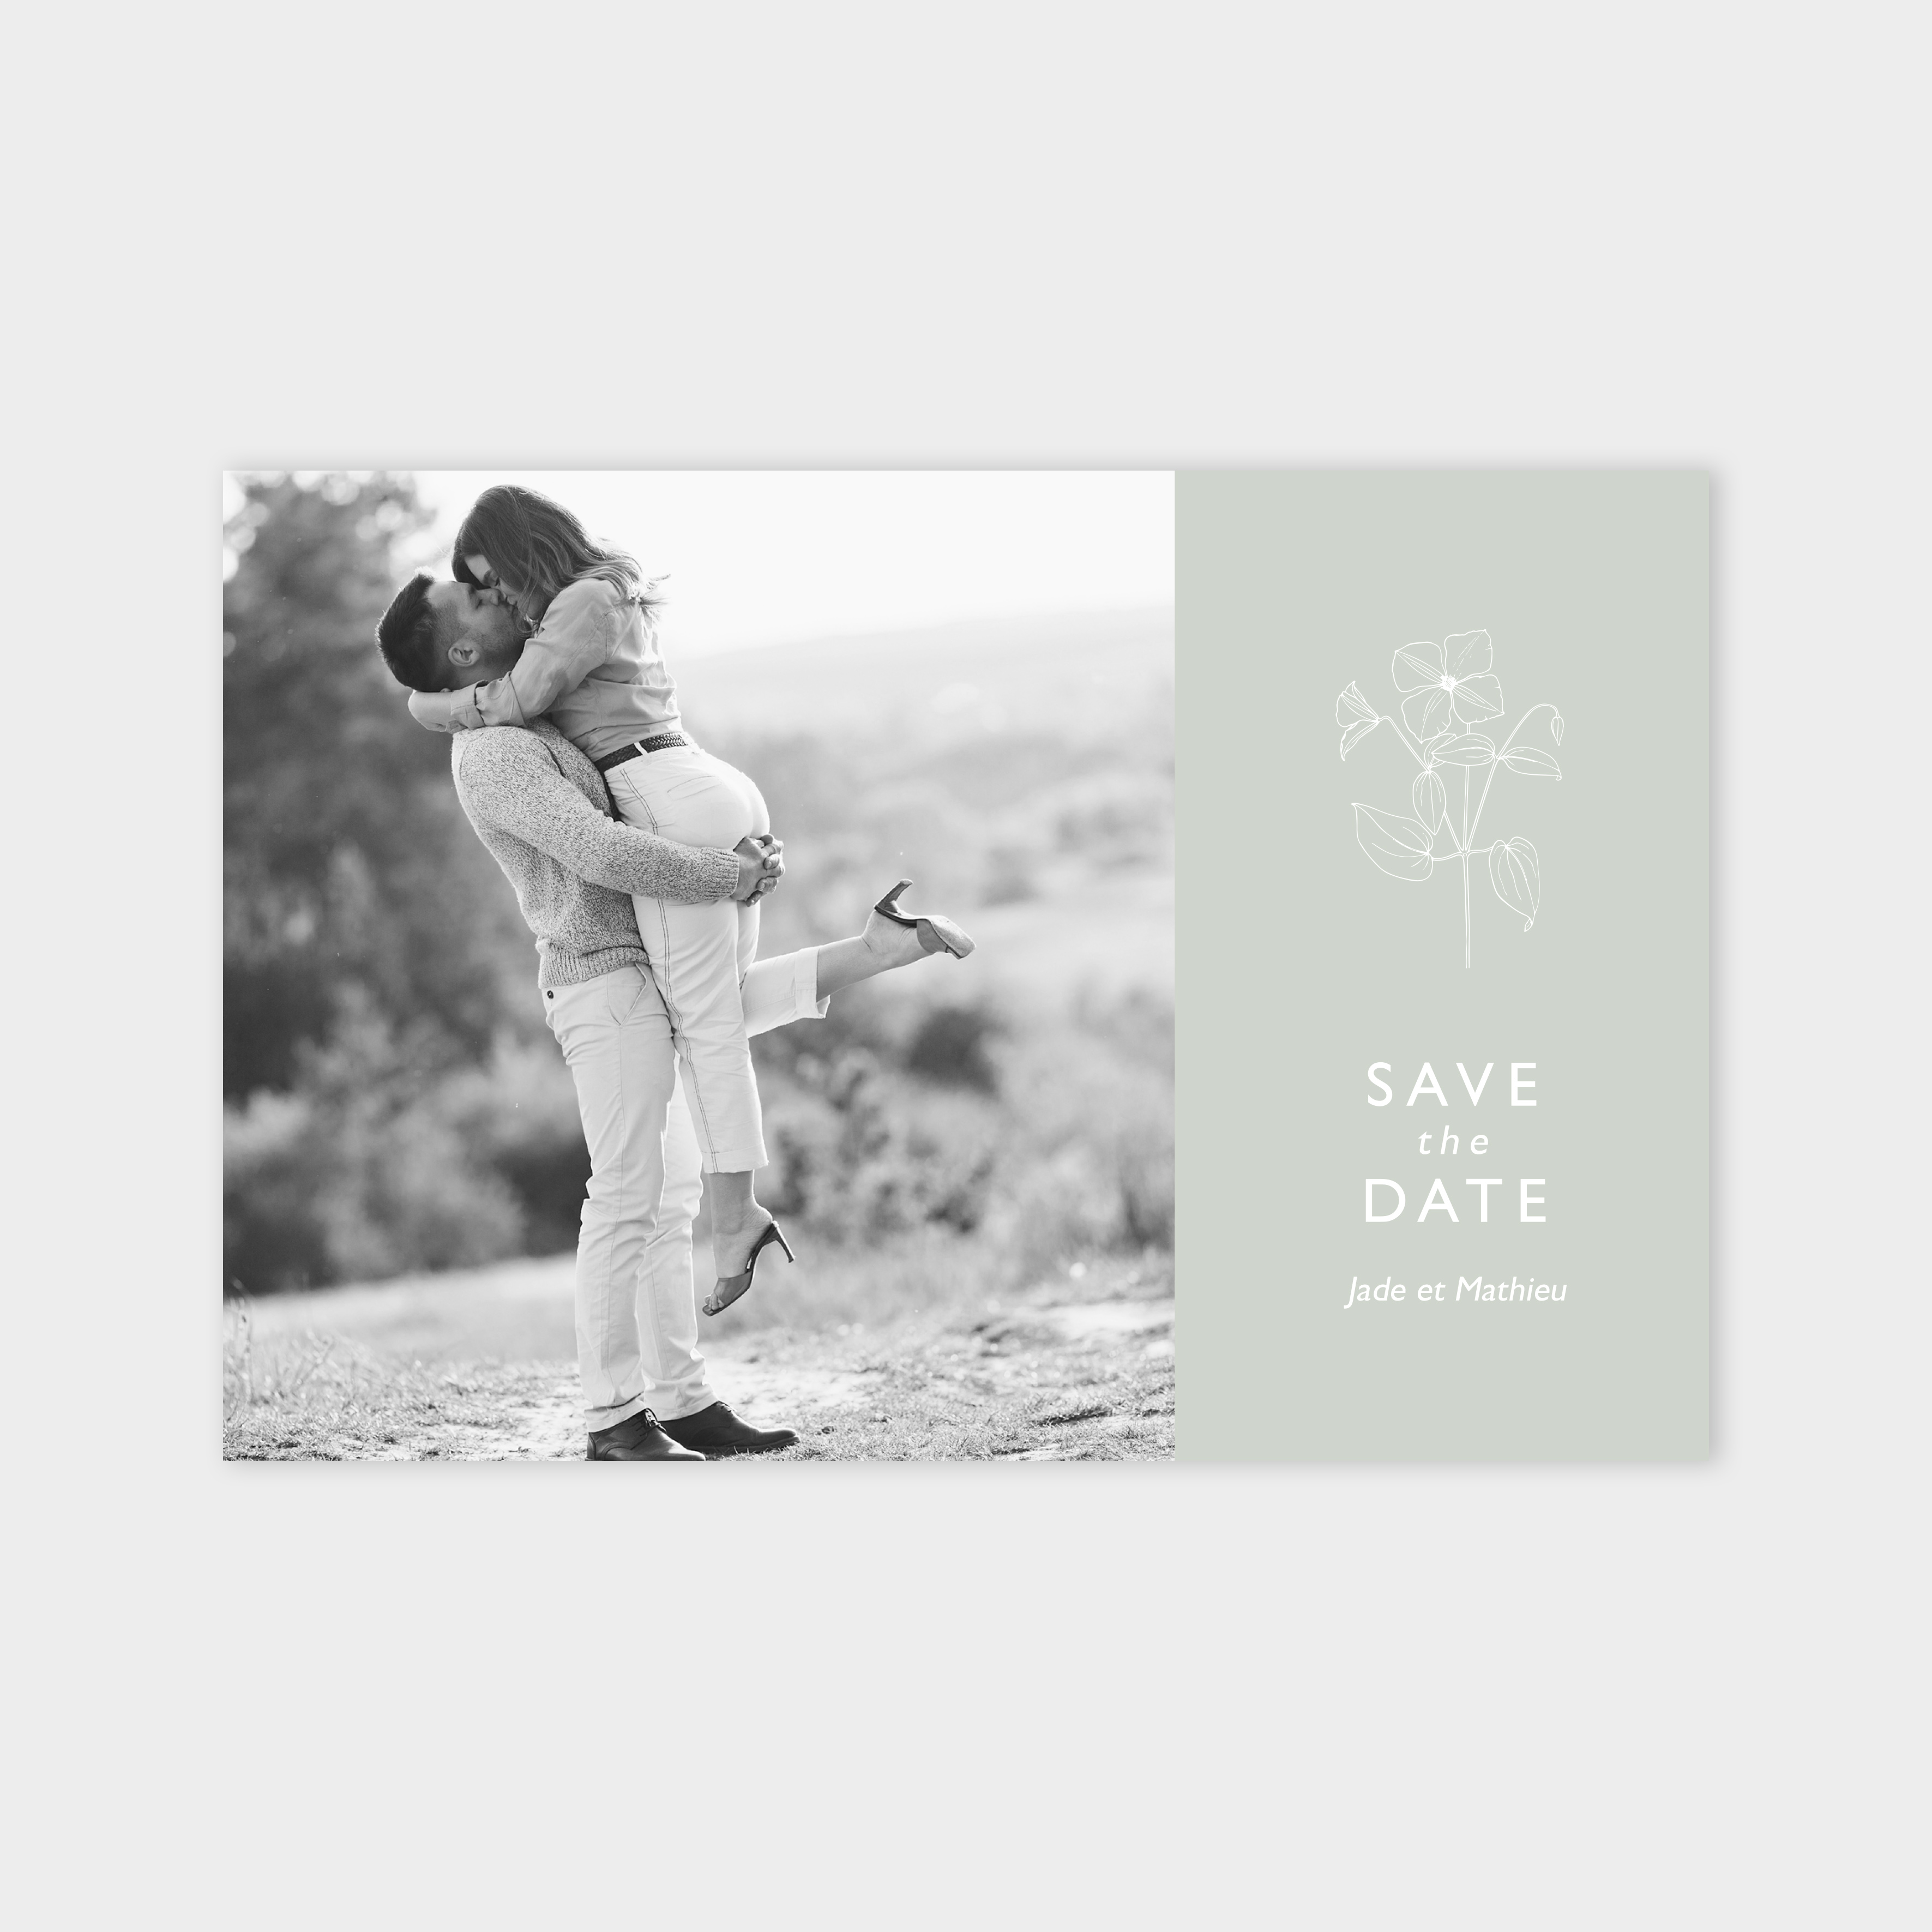 Save the date Toi et moi jade